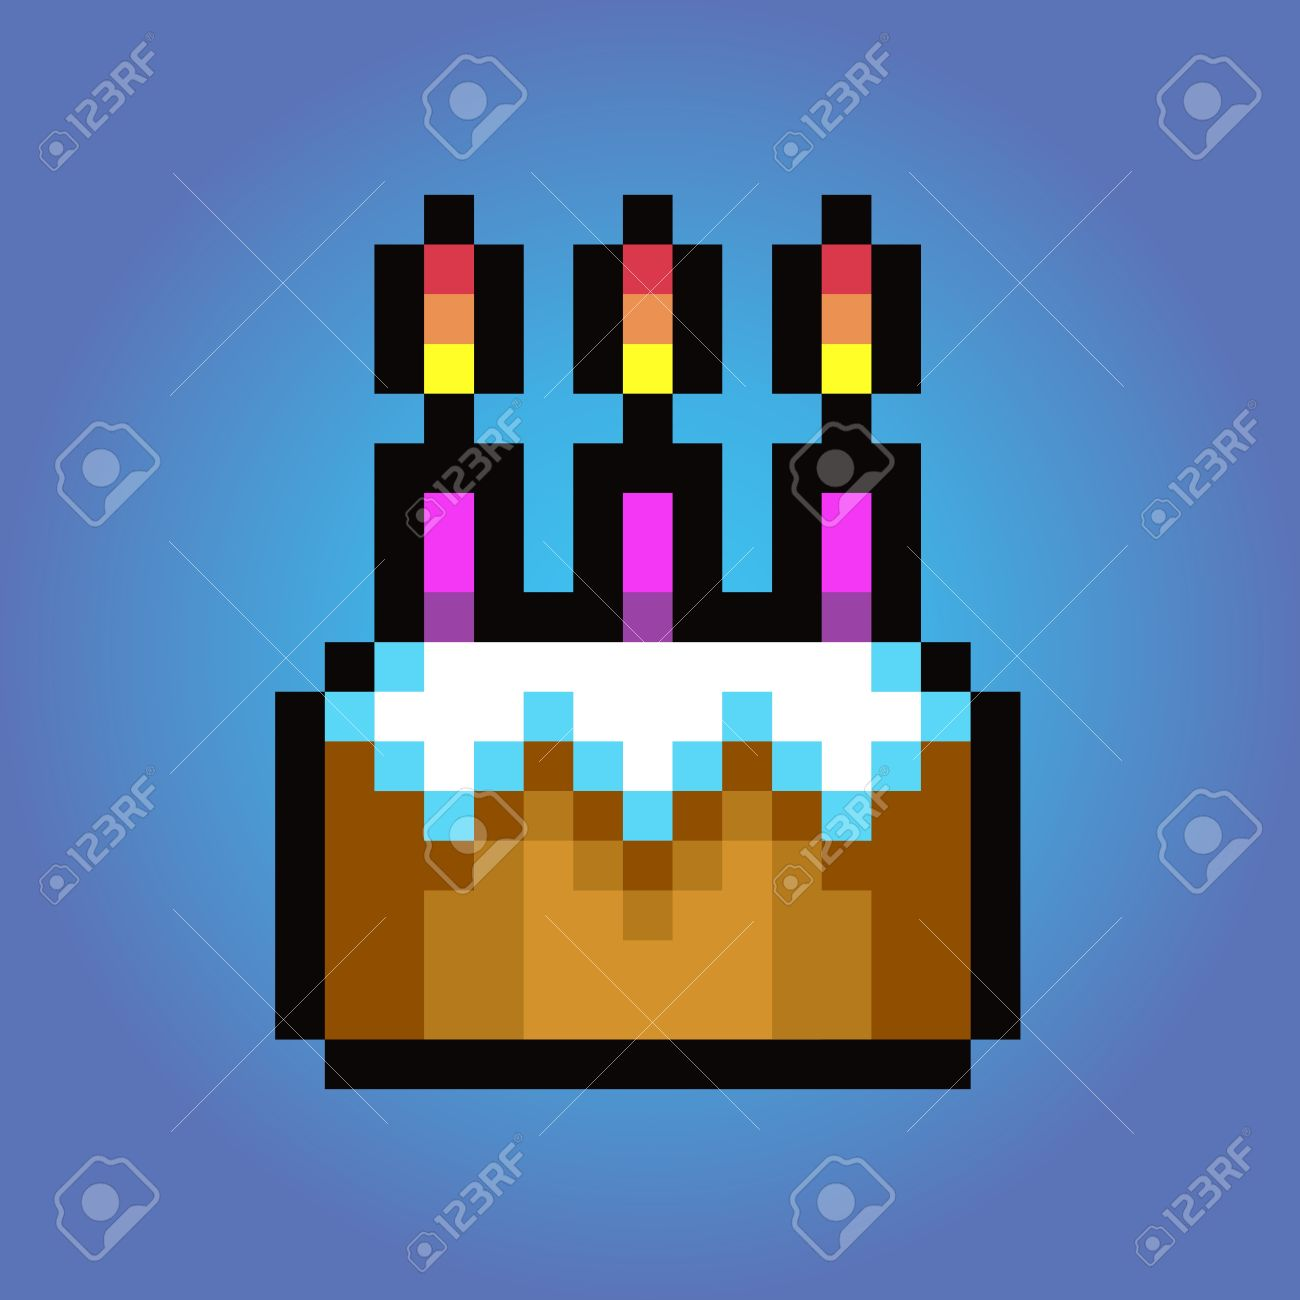 Birthday Cake Pixel Art Vector Icon Illustration